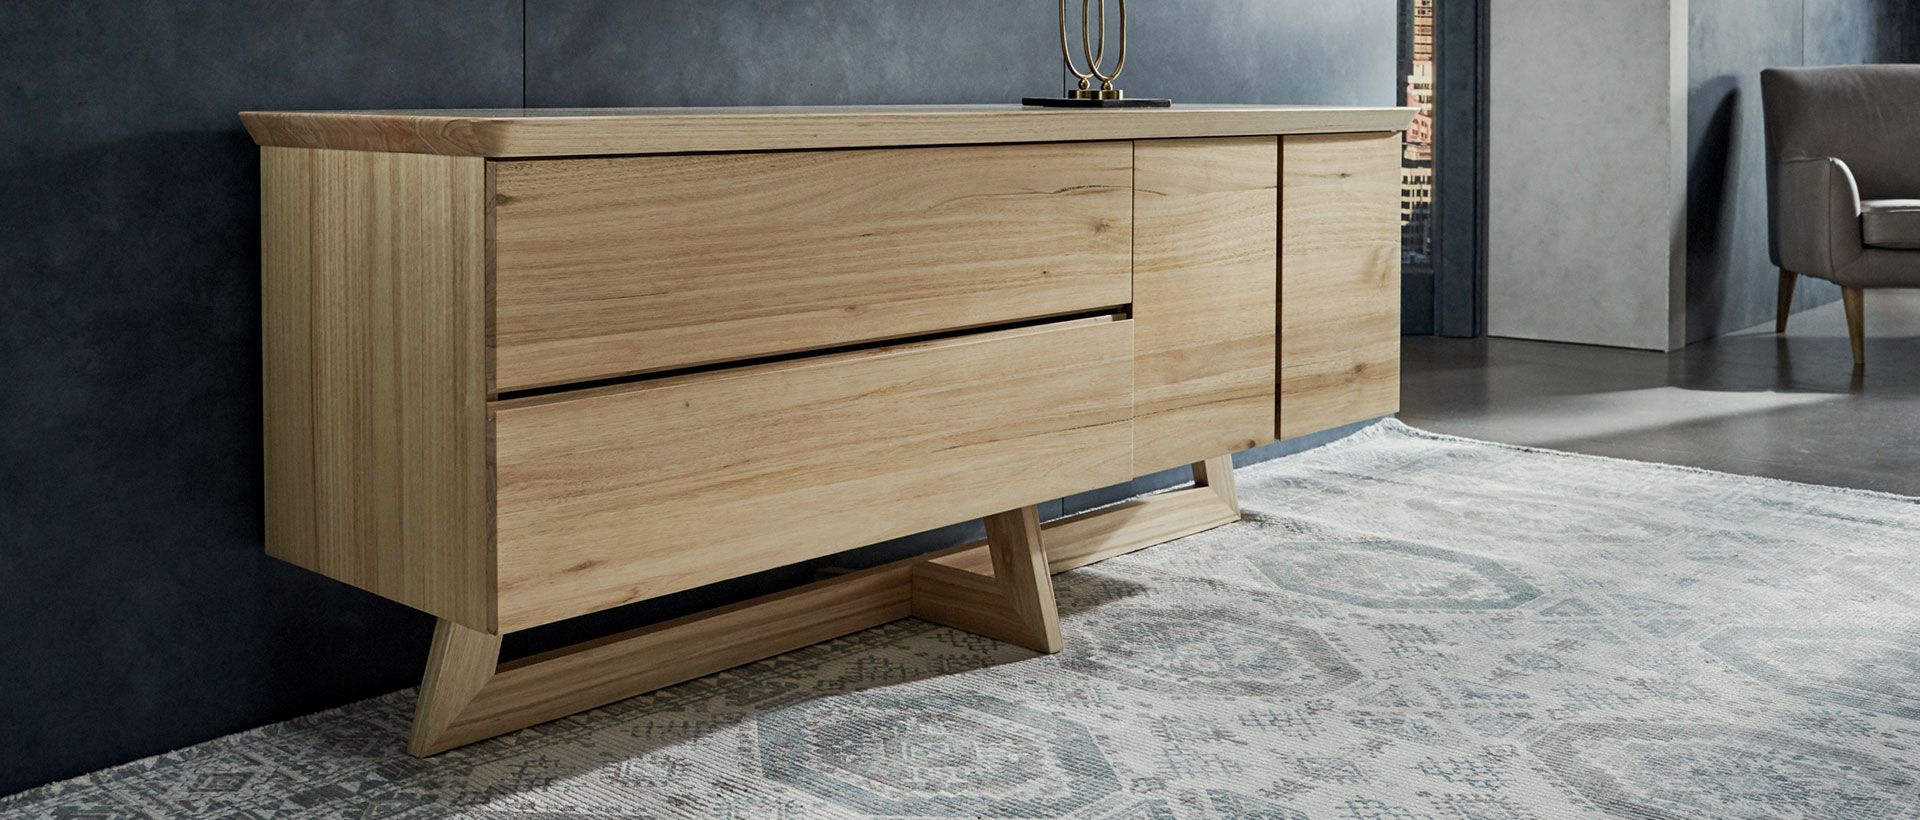 Buffets, Cabinets & Sideboards | Nick Scali intended for Industrial Style 3-Drawer Buffets (Image 9 of 30)